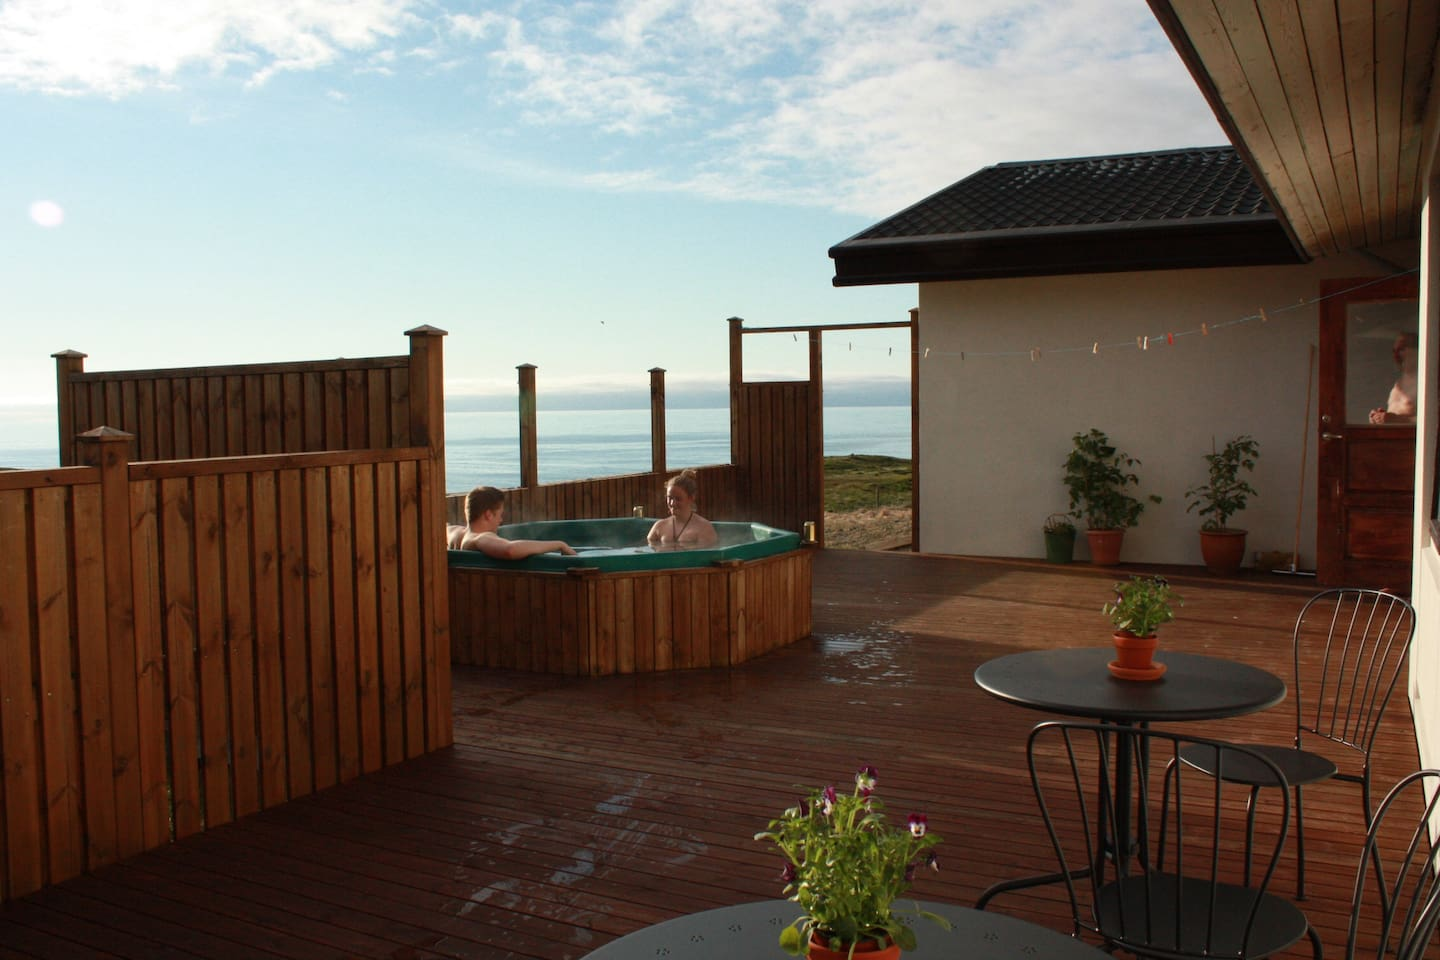 Large veranda with a hot tub and sea view